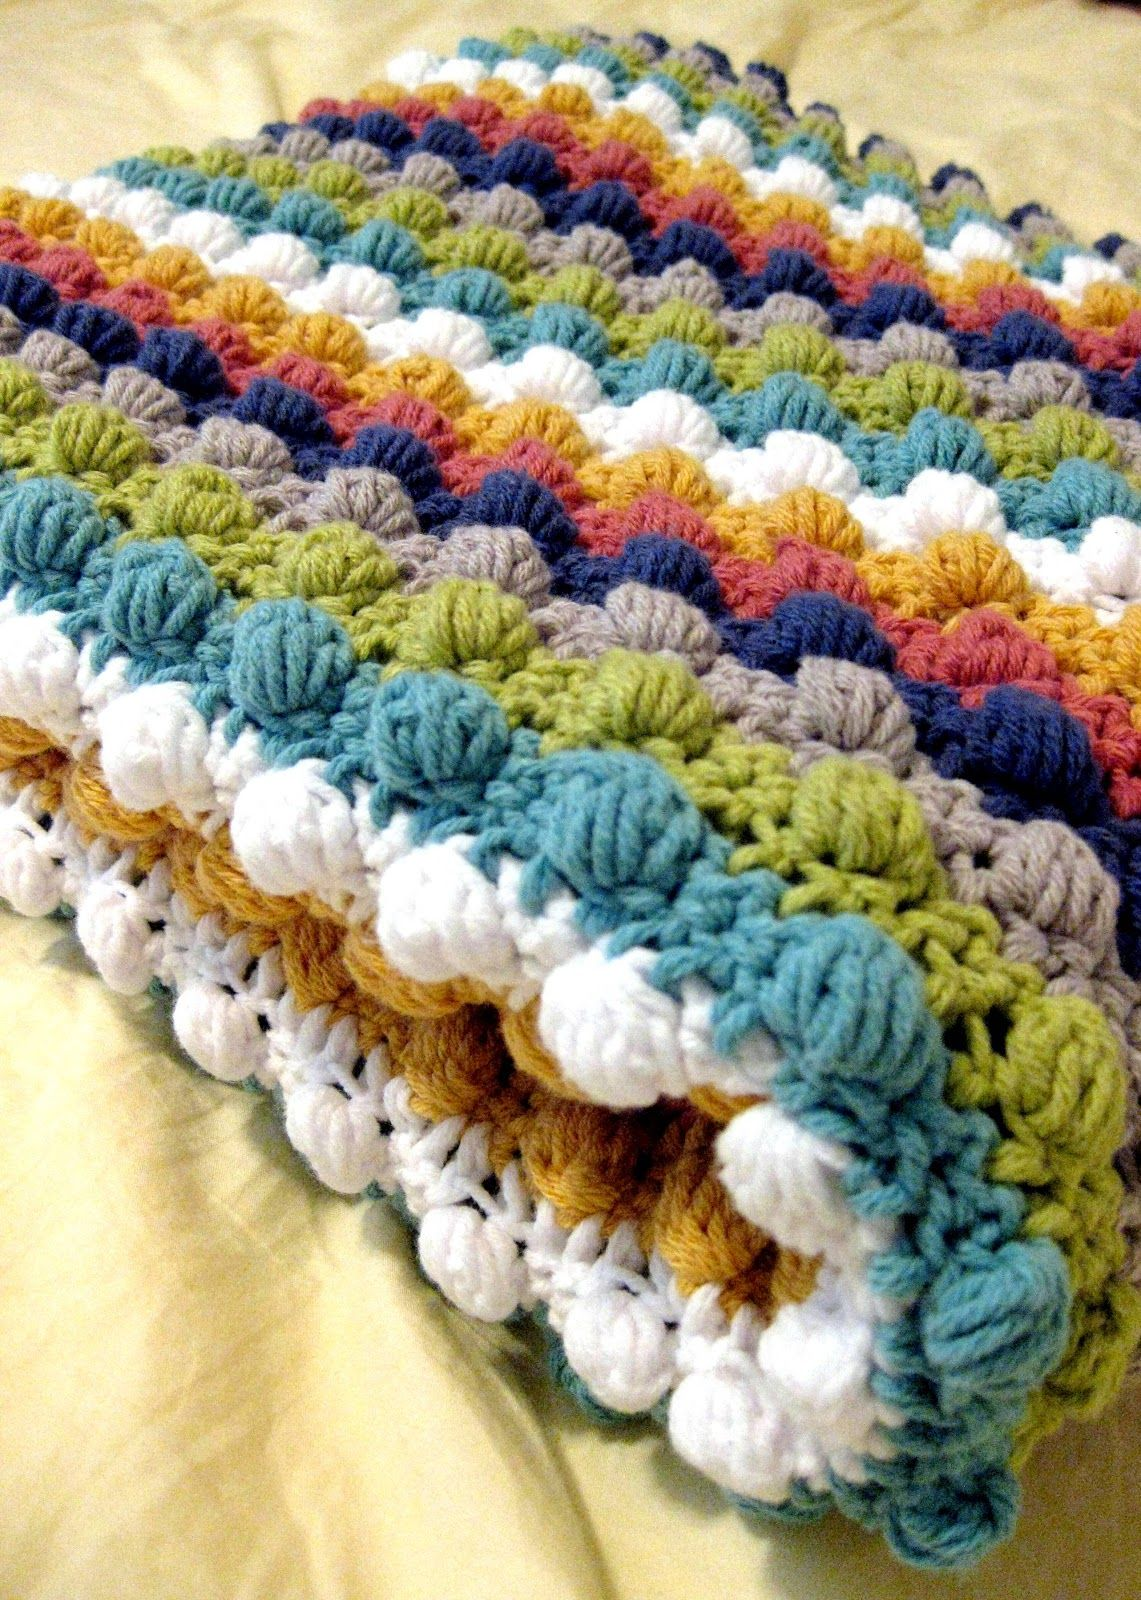 Crochet blankets crochet lego blanket crochet vw bus blanket bumpy crochet blanket this pin leads to a bobble blanket which leads back to mooglys blackberry salad blanket the power of the internet at its bankloansurffo Choice Image